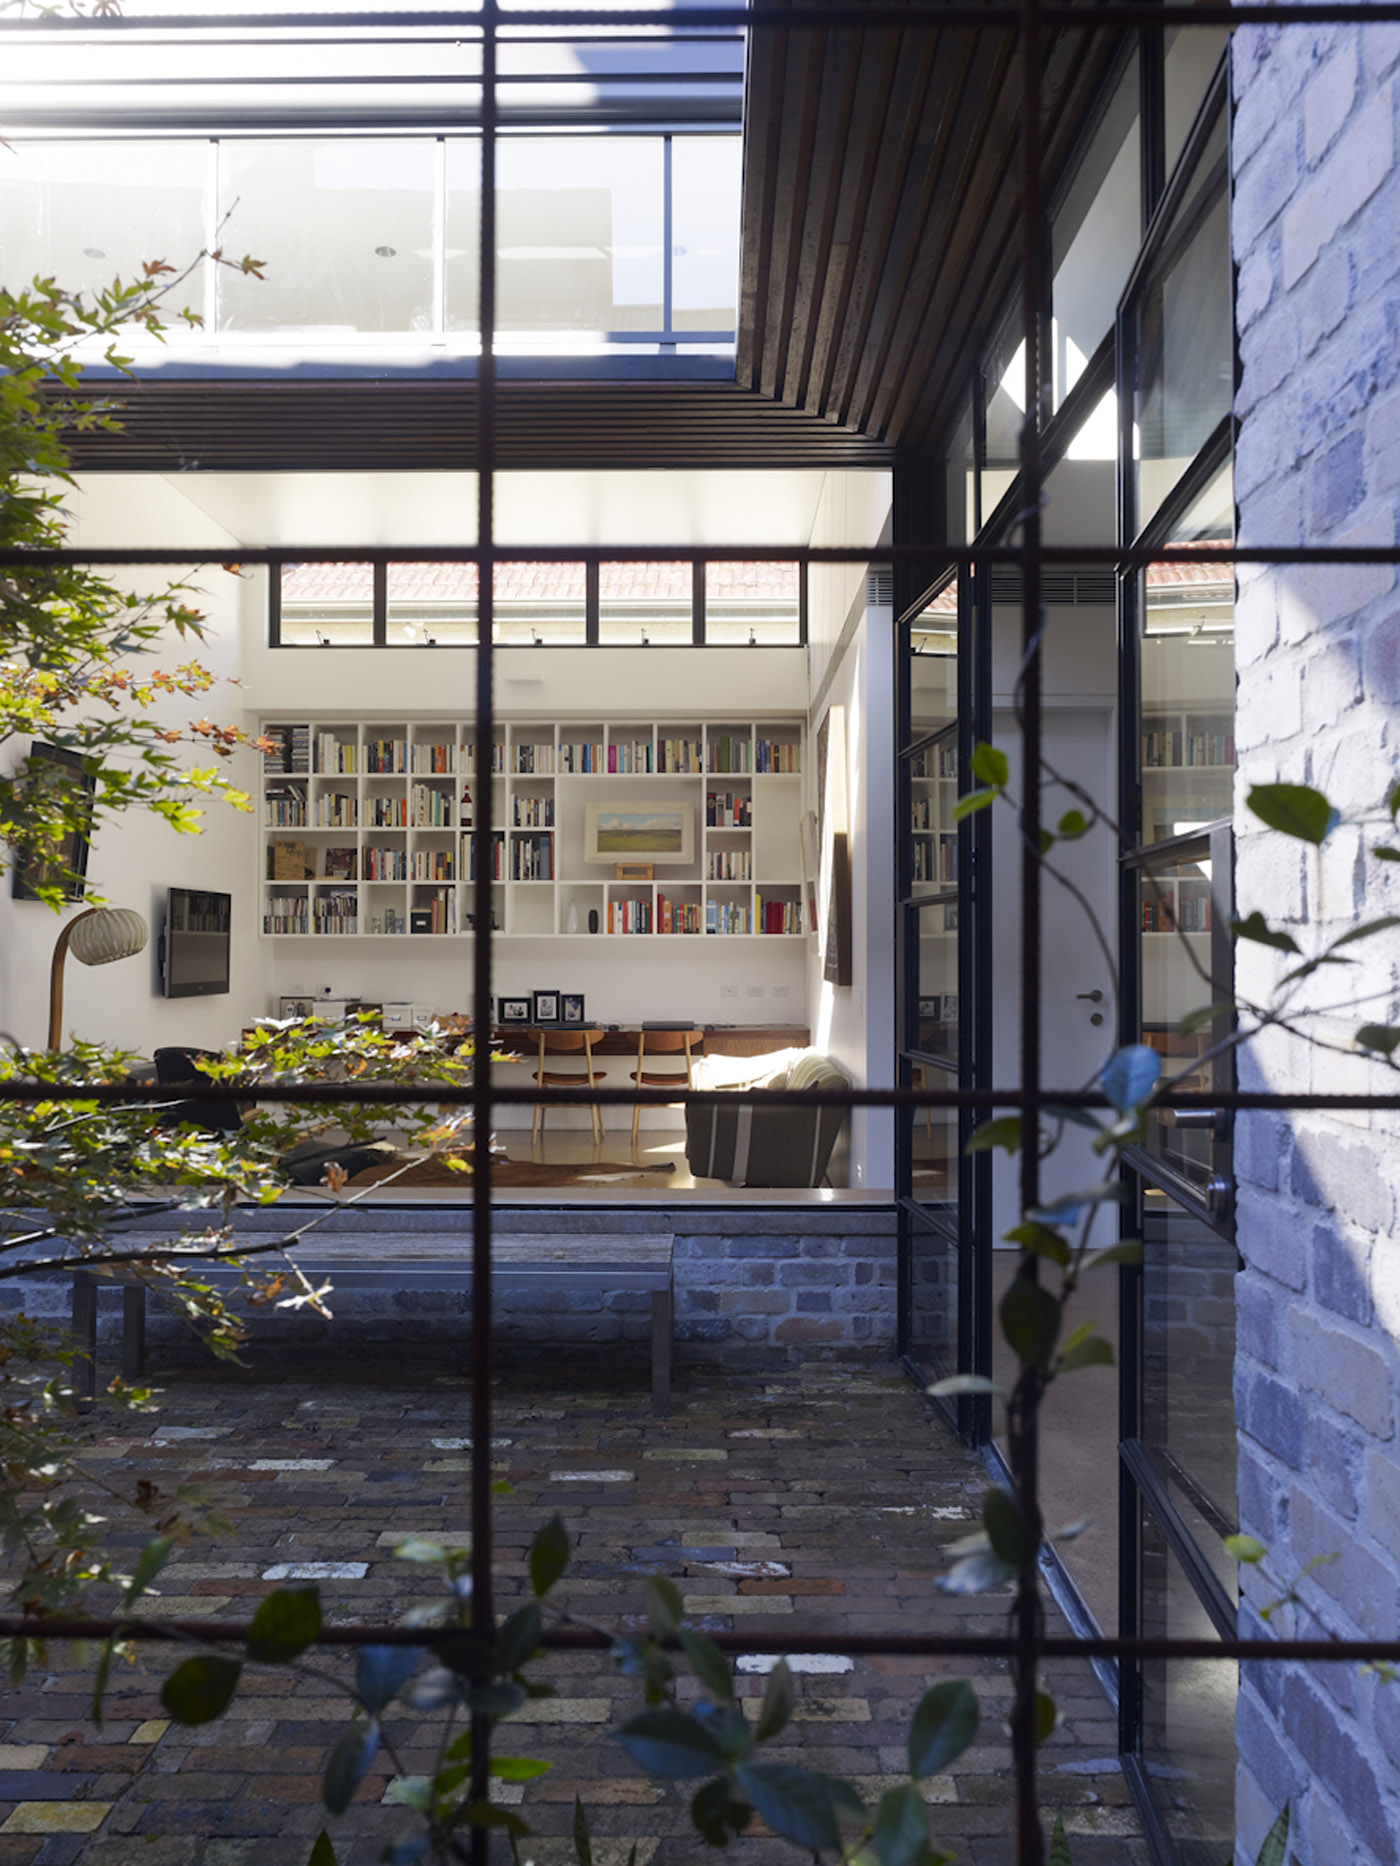 Smee Schoff House by award winning Sydney residential architecture firm Sam Crawford Architects. View to double-height living space connected by central garden courtyard